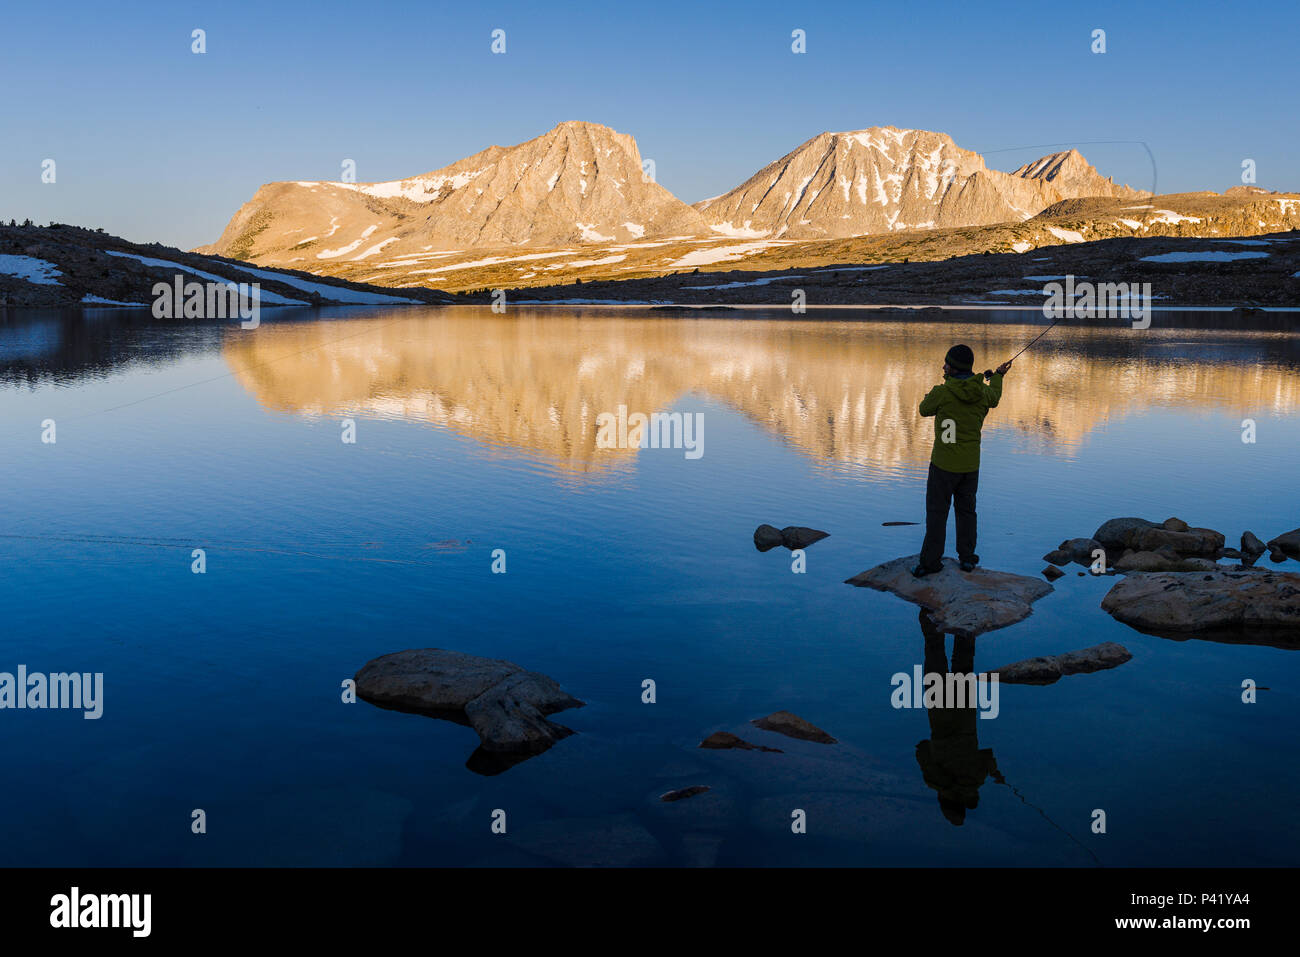 Sunrise fly fishing at French Lake with the reflections of Merriam peak, Royce peak and Feather Peak in the High Sierra mountains near French Canyon. - Stock Image